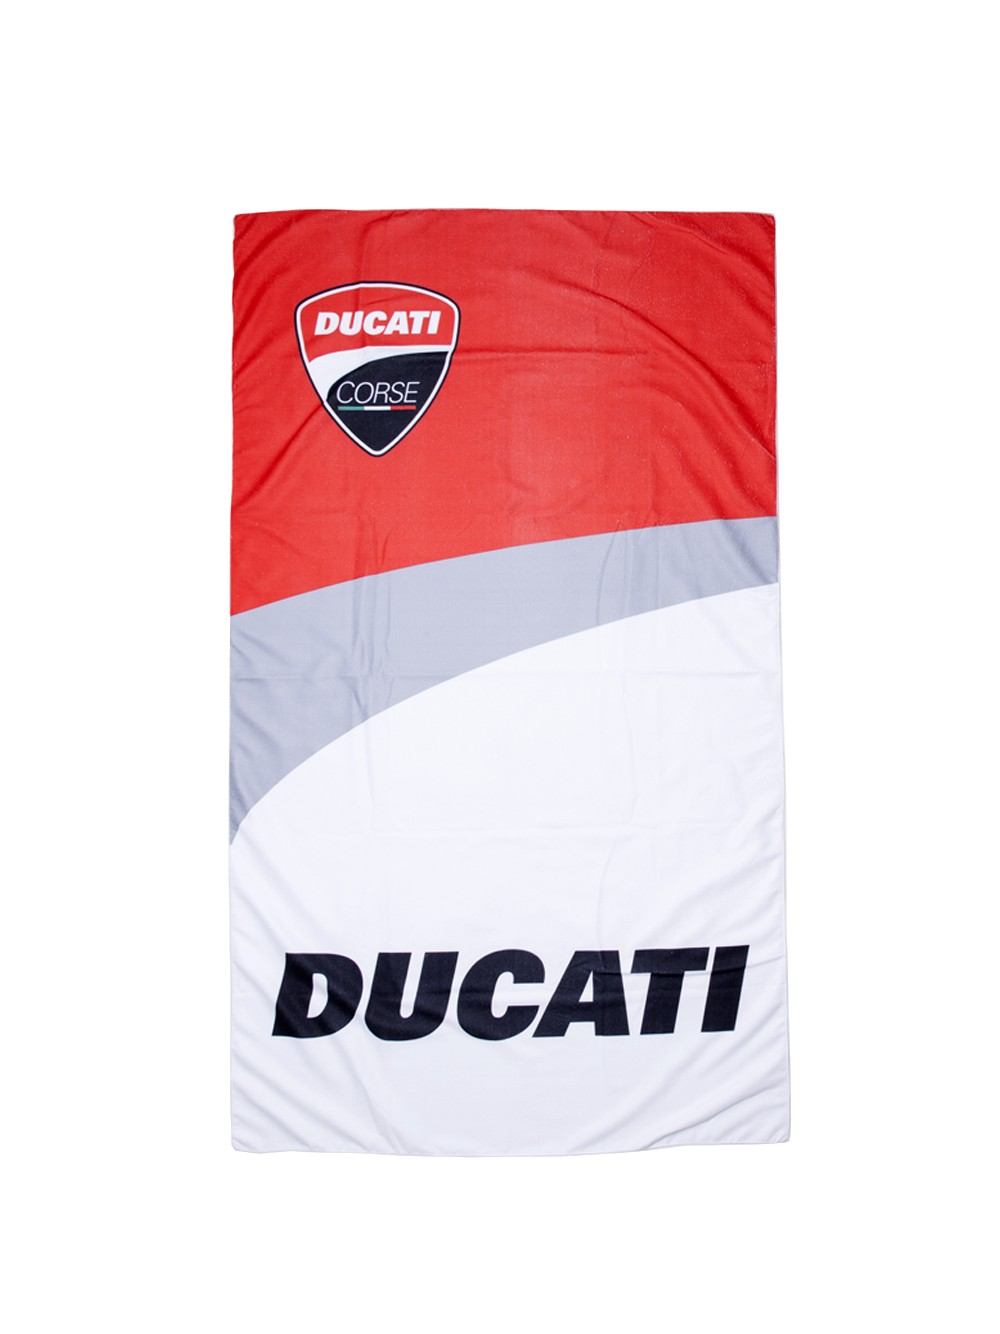 motogp apparel ducati corse ducati corse serviette de plage beachtowel 1756001mulu. Black Bedroom Furniture Sets. Home Design Ideas